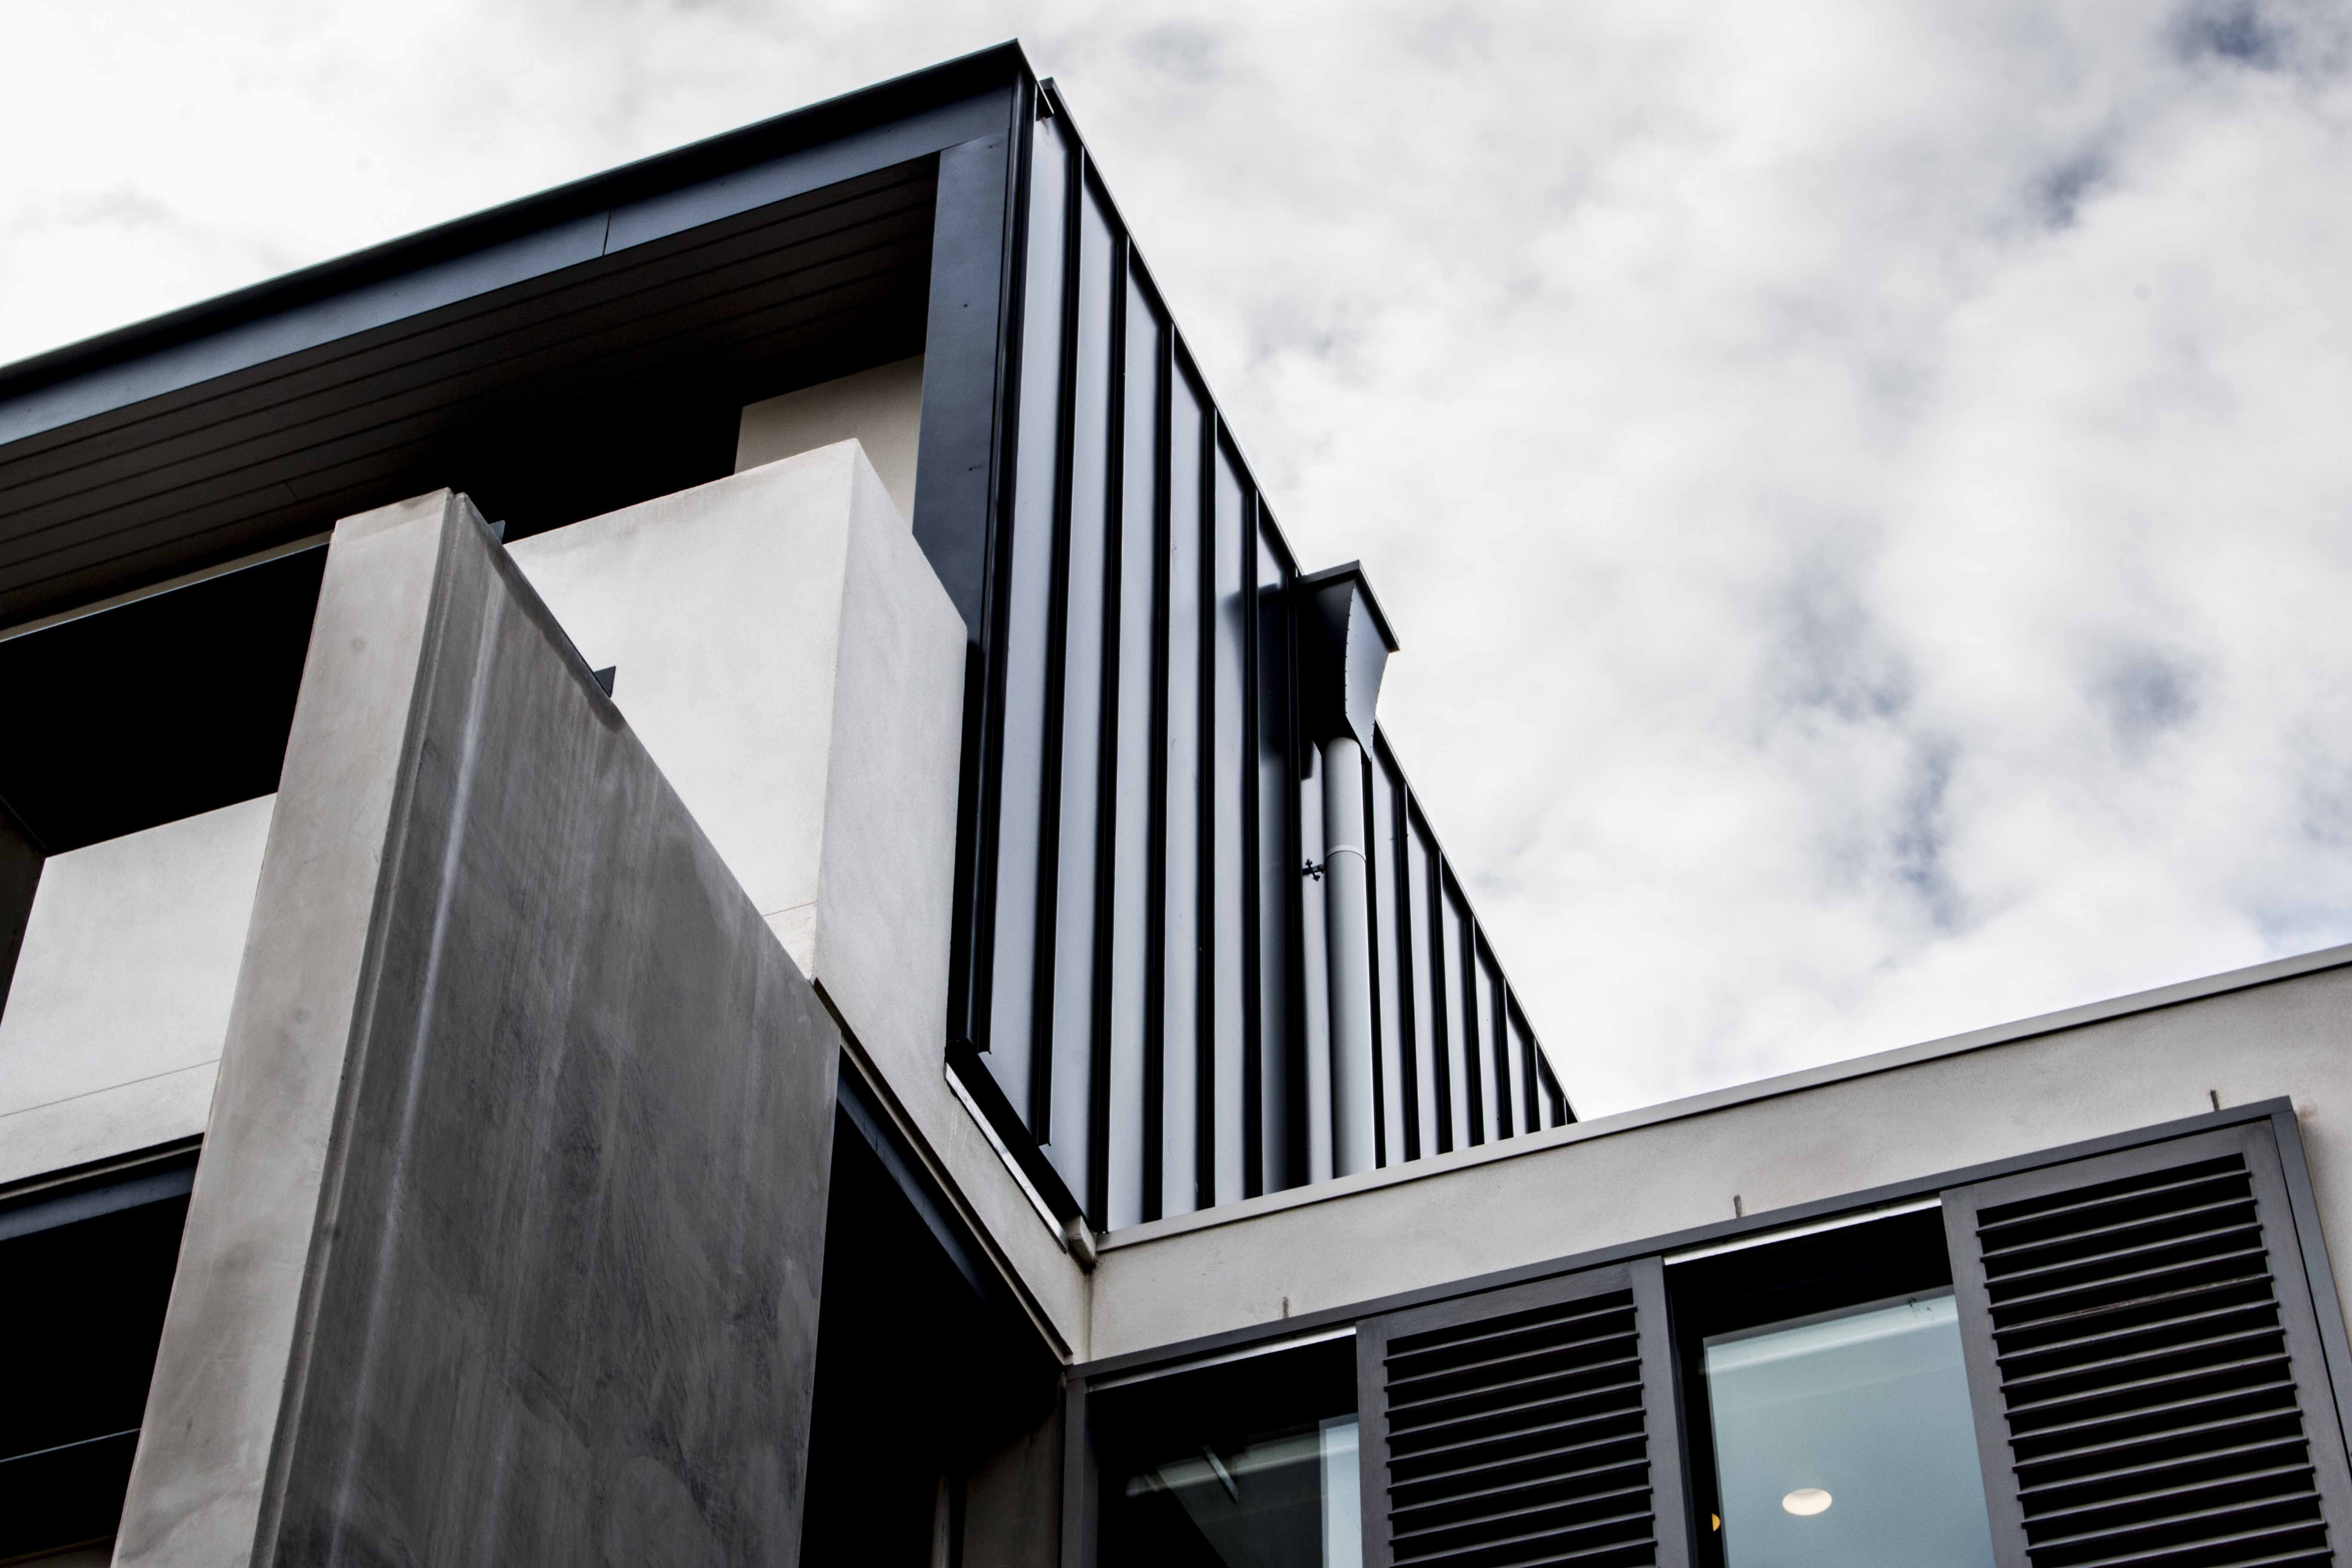 Brookville Road Apartments Features Our Standing Seam Wall Cladding Panel System In Colorbond Steel S Woodland Gr Metal Cladding Cladding Systems Roof Cladding